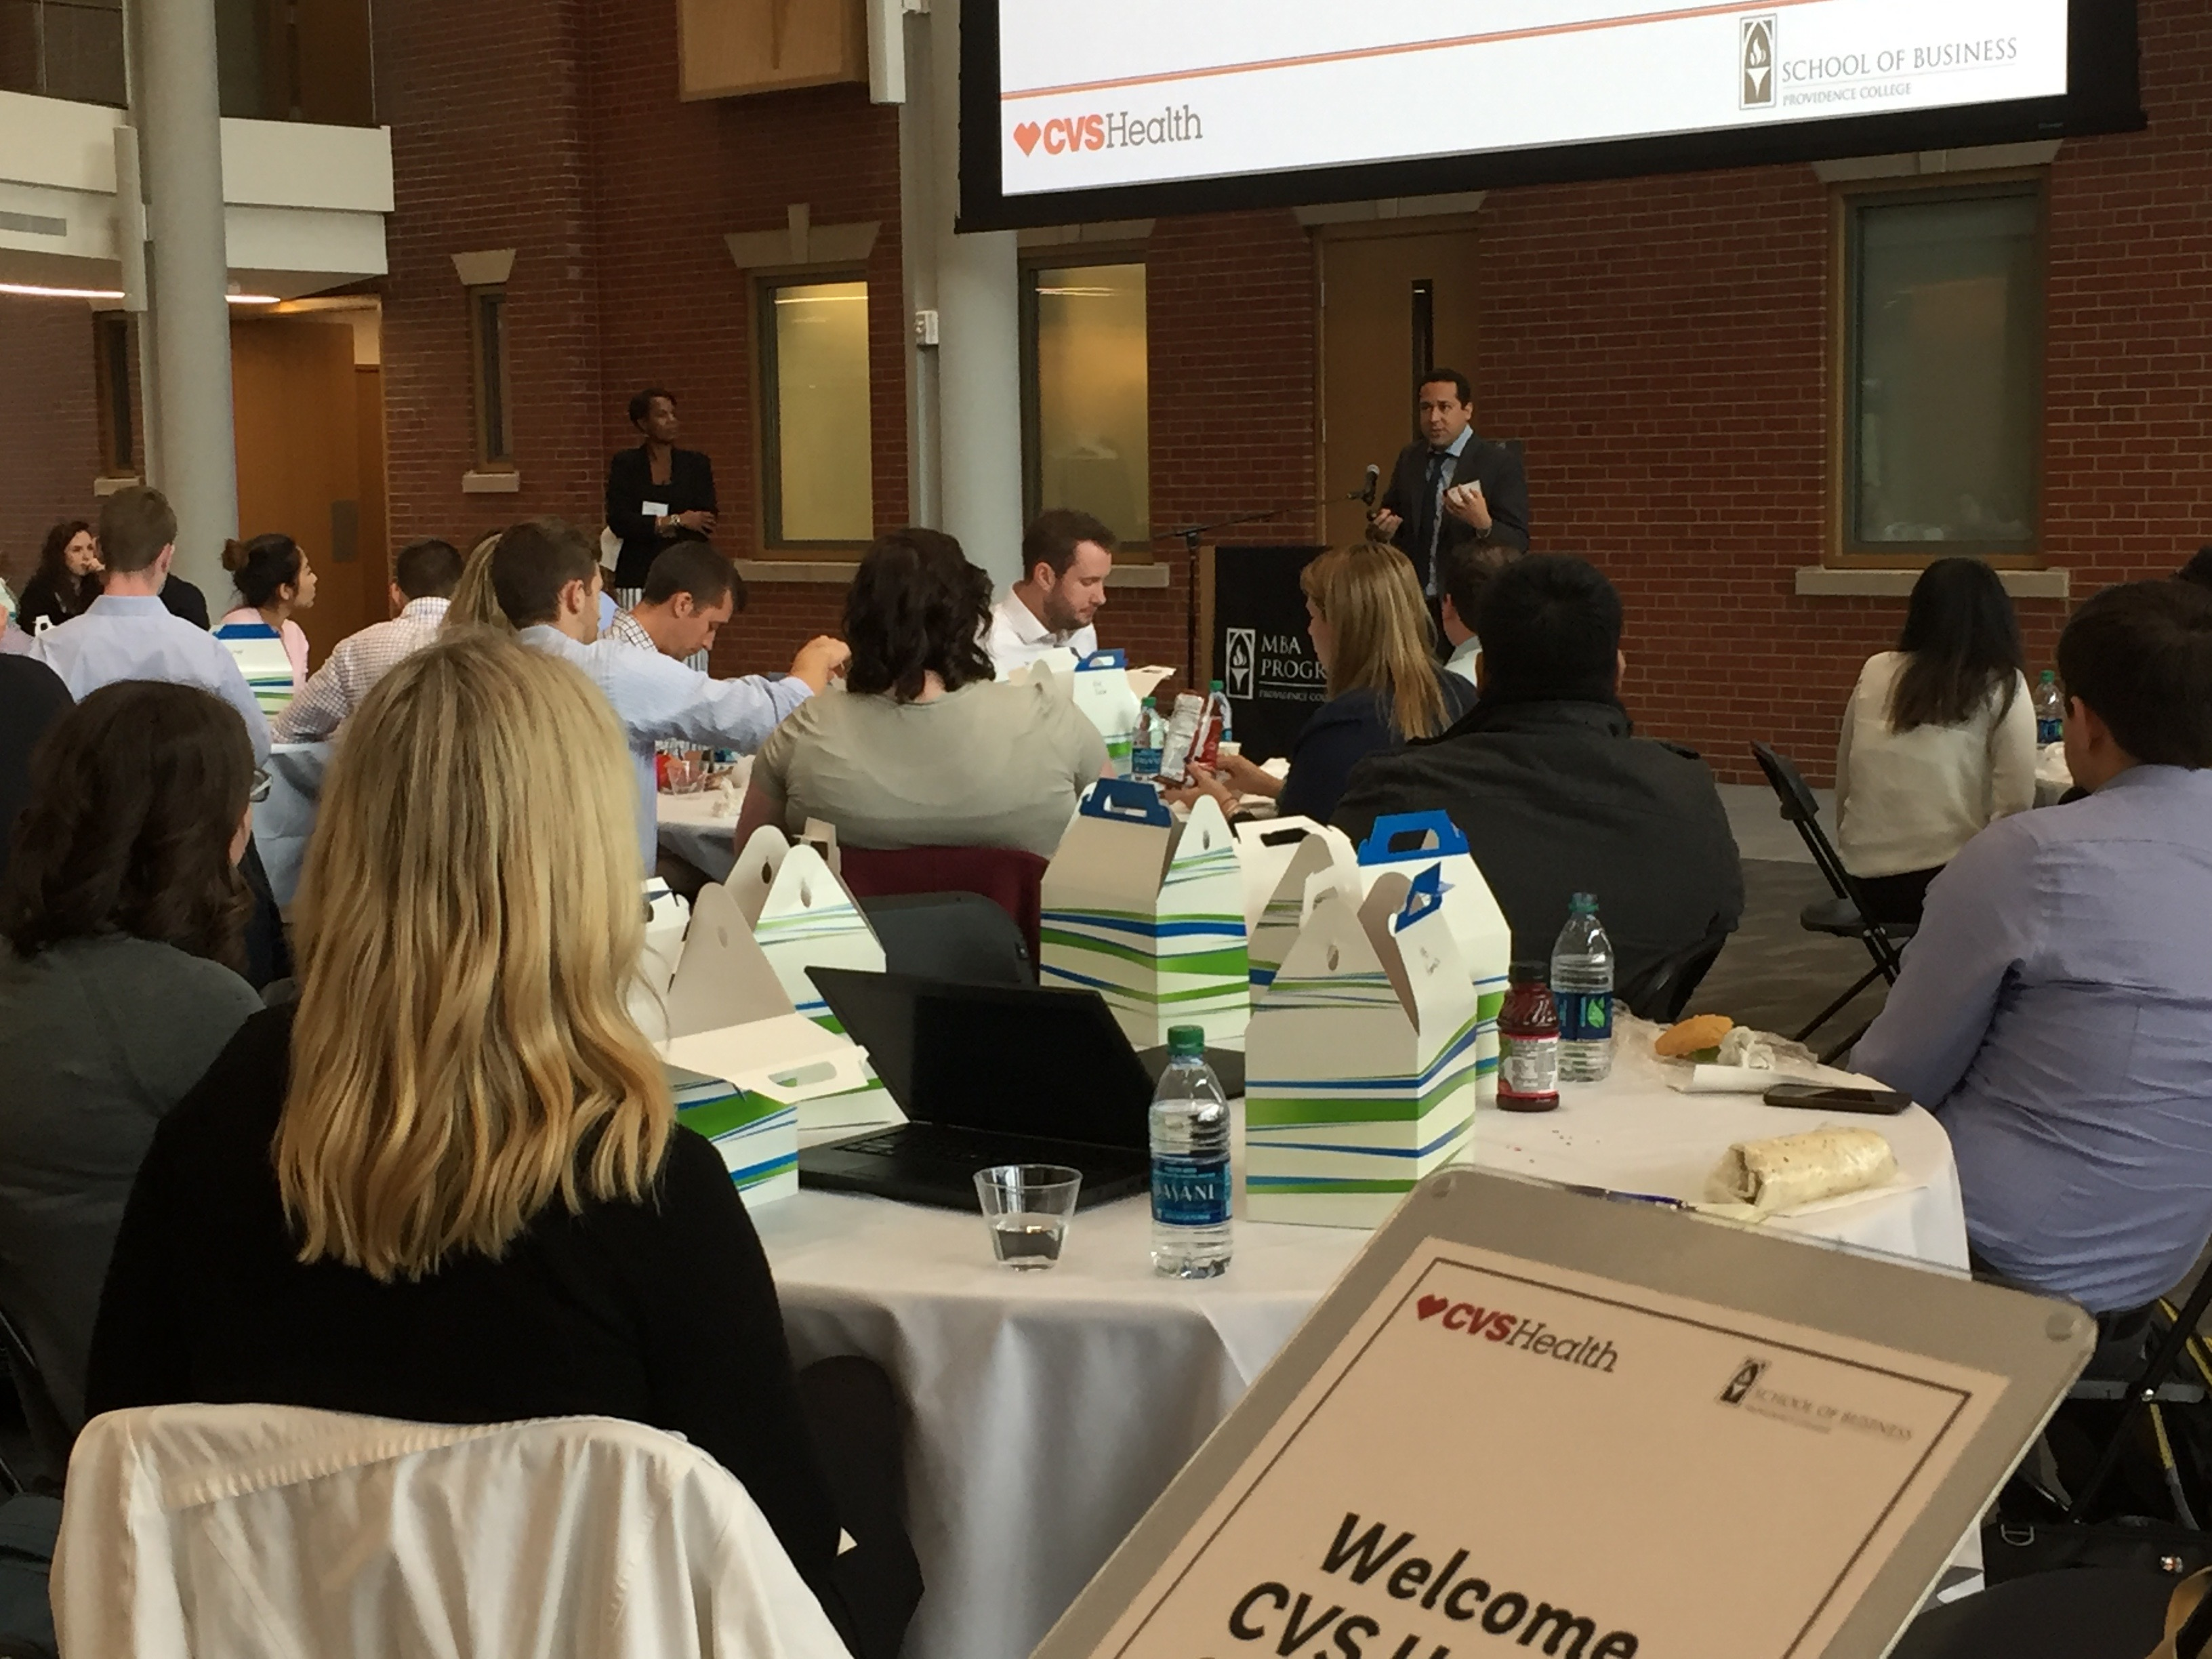 cvs health intern orientation presented by the pcsb  u2013 providence college school of business